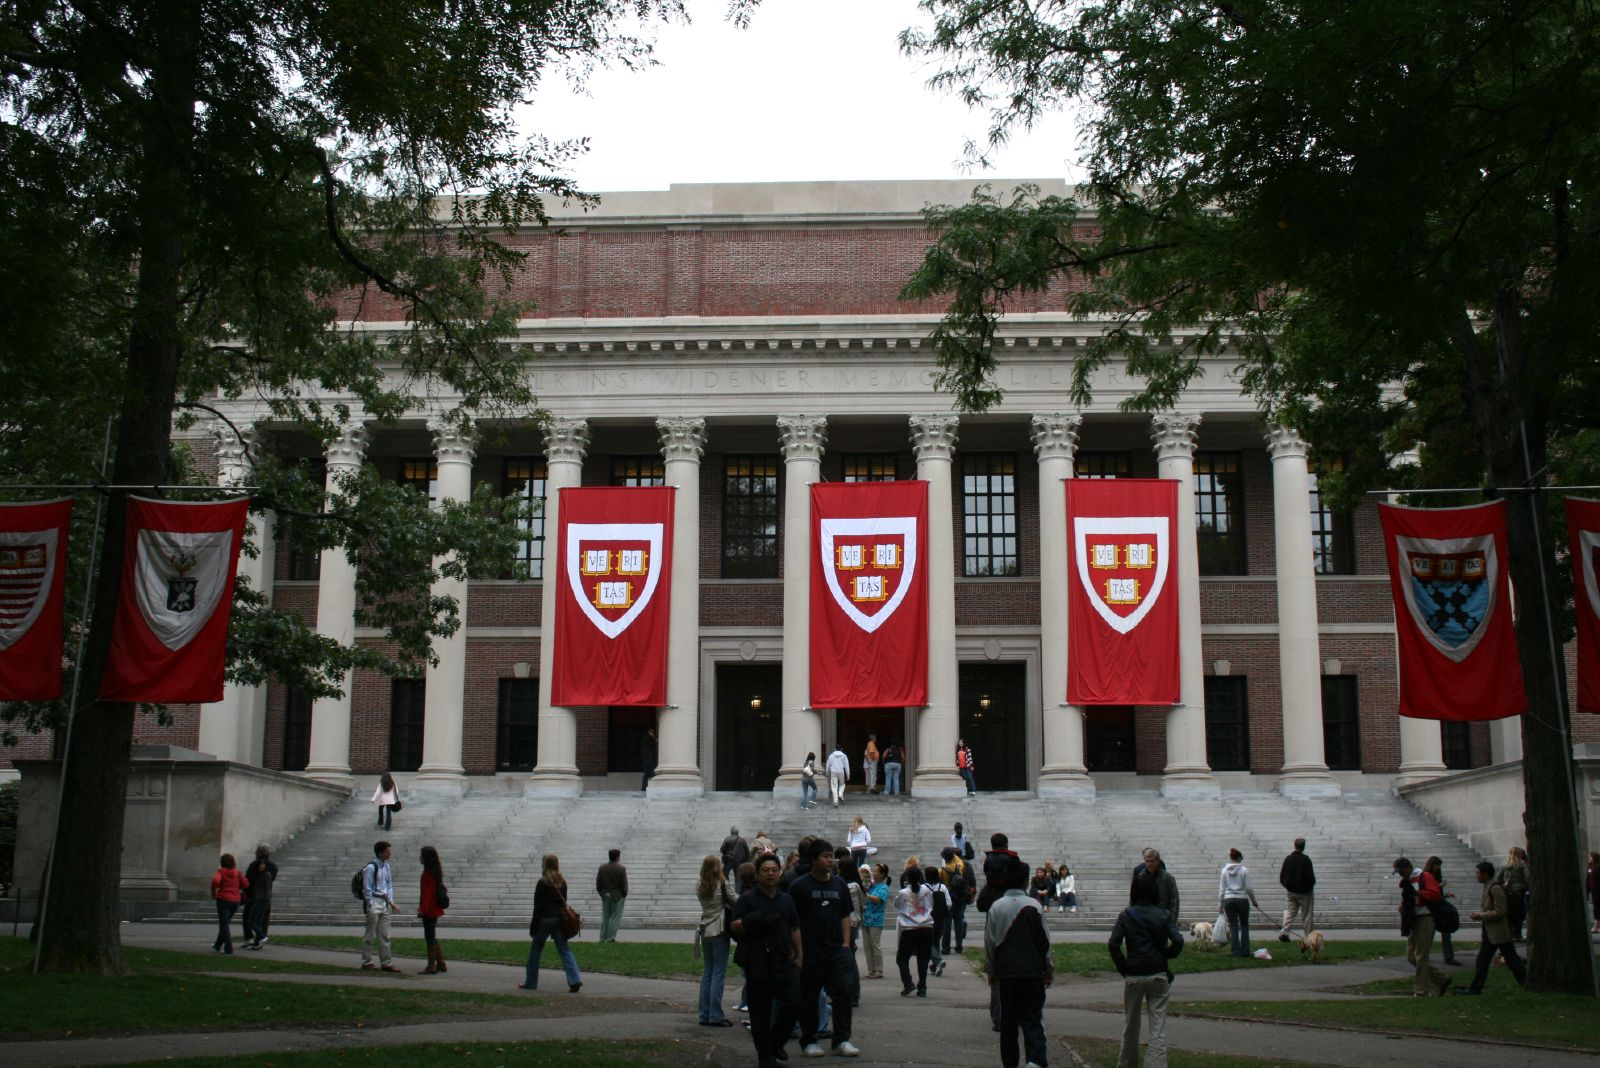 Debate team from Harvard loses while competing with New York prison inmates